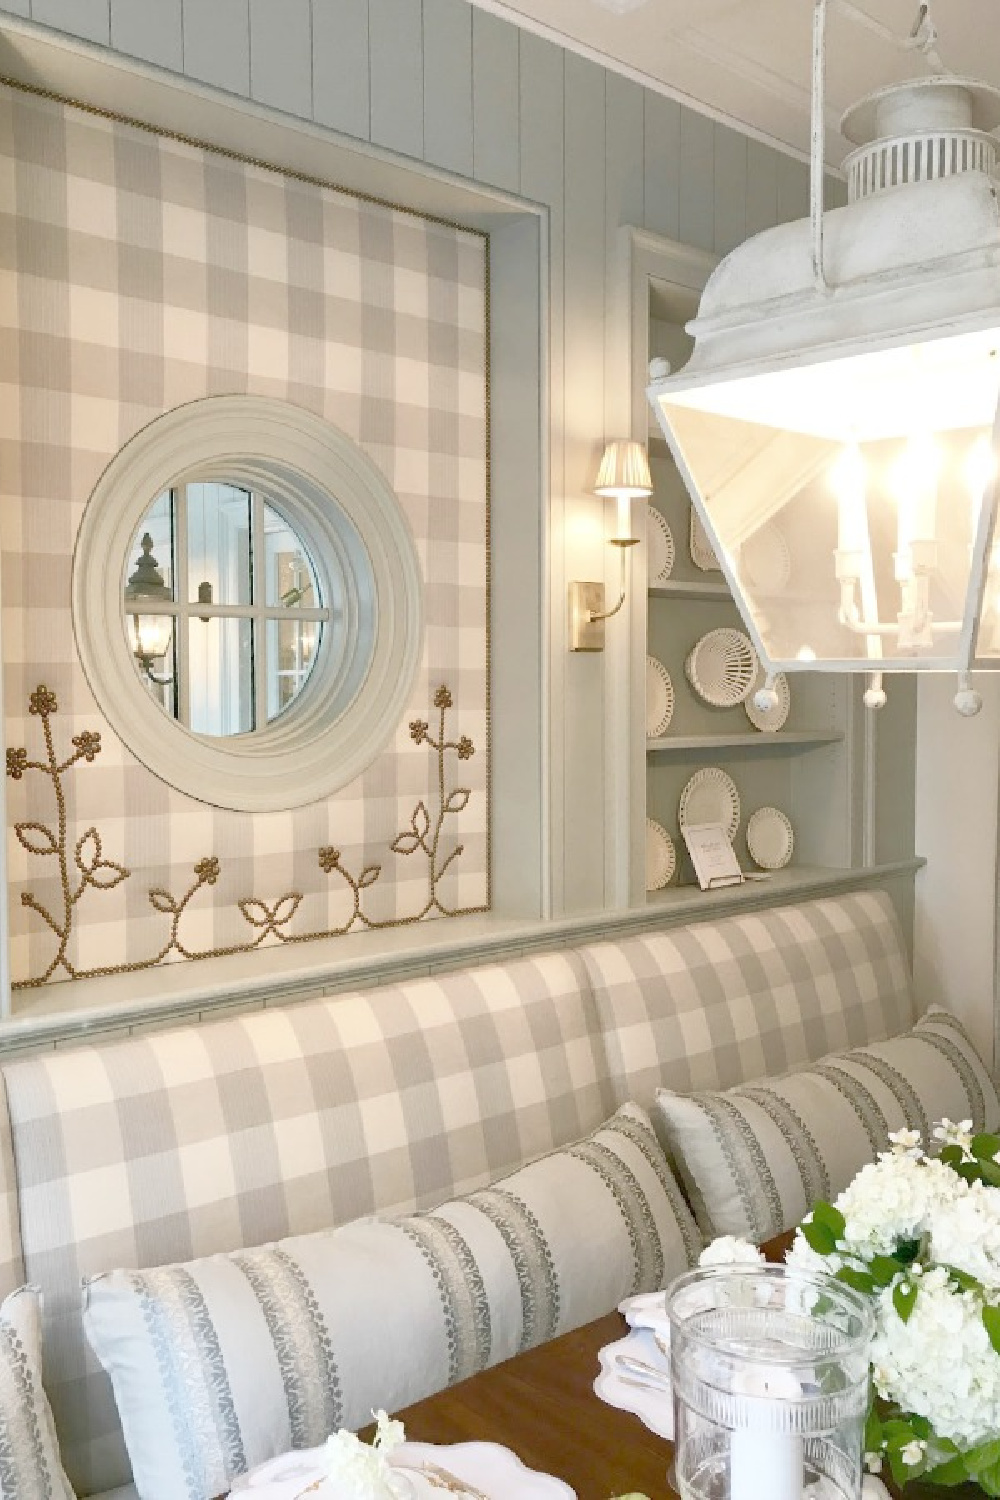 Light blue grey and cream check fabric upholstered walls and banquette in an elegant showhouse breakfast room with vintage lantern pendant. #diningroom #traditionalstyle #gingham #buffalocheck #built-ins #creamware #roundwindow #nailheadtrim #lantern #interiordesign